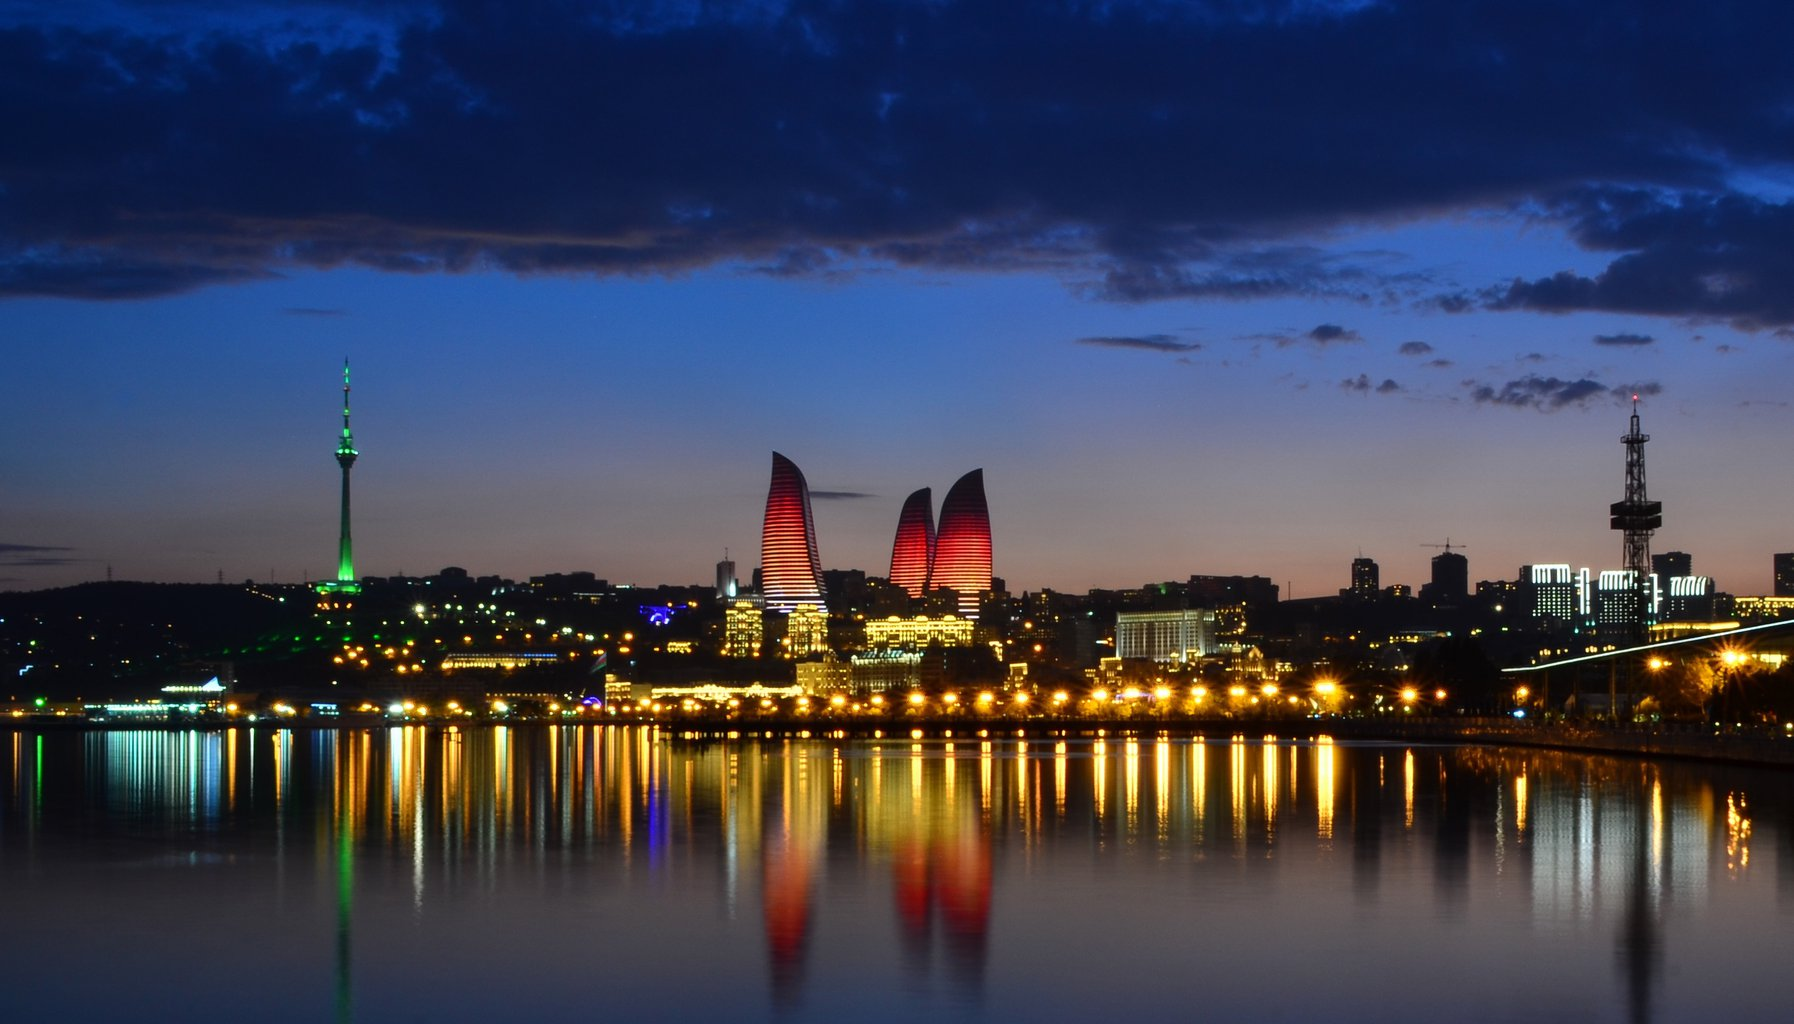 Baku_Flame_Towers(1)